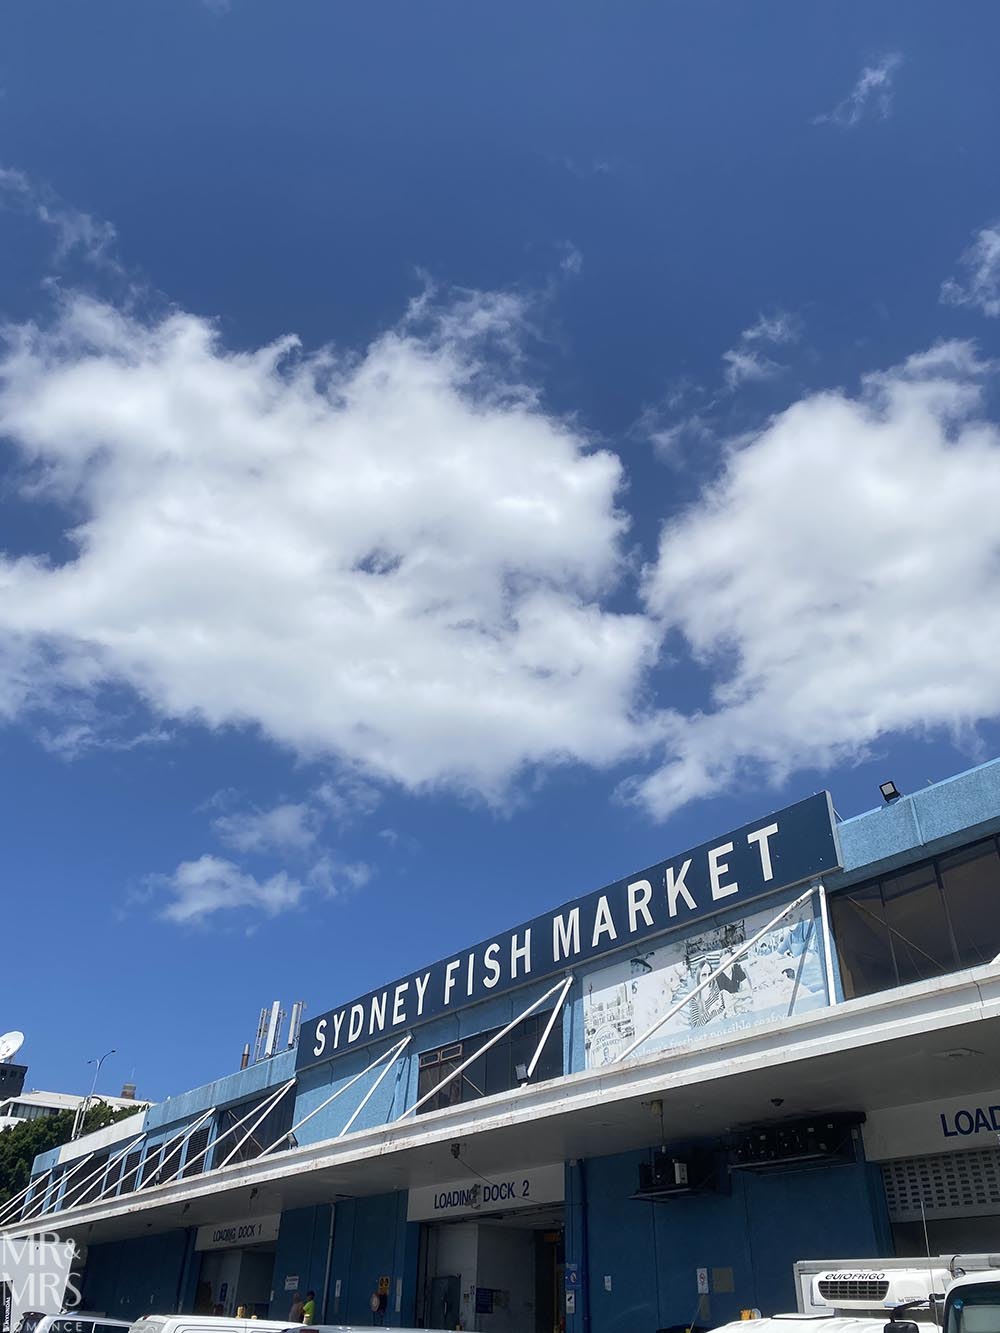 Sydney Fish Markets